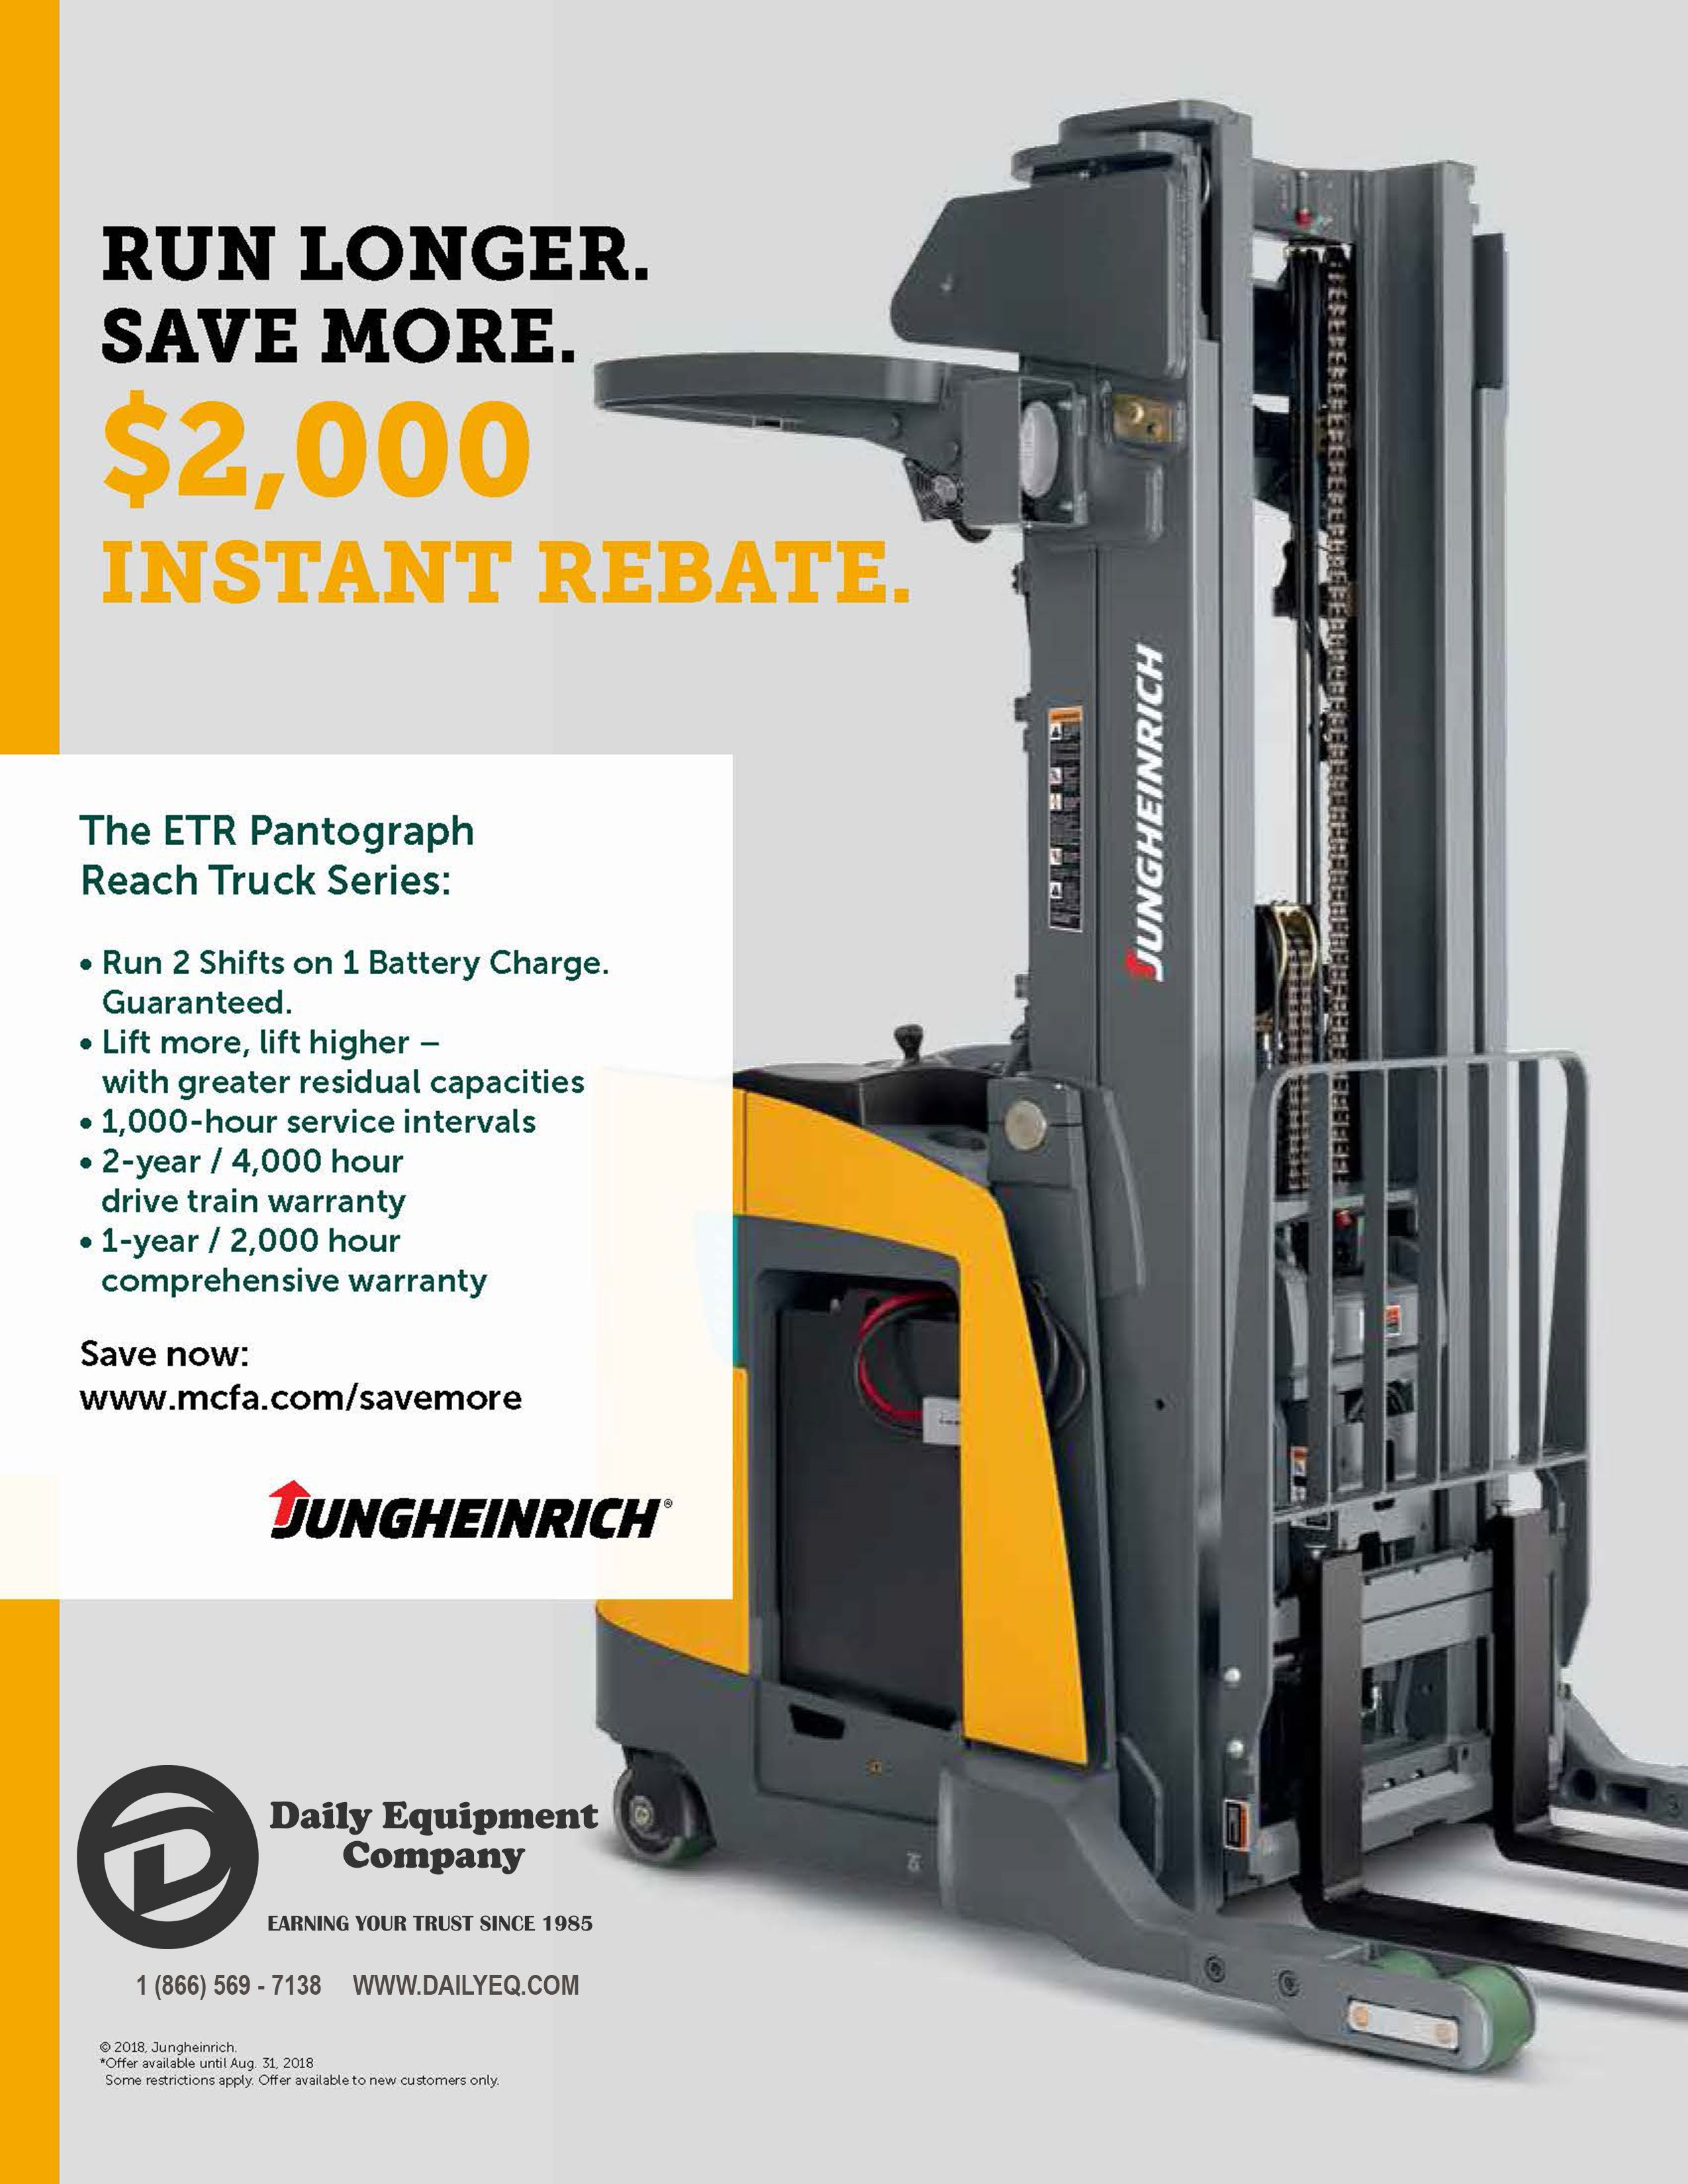 Instant $2,000 Rebate on the Jungheinrich ETR Pantograph Reach Truck Series  Check out details here: